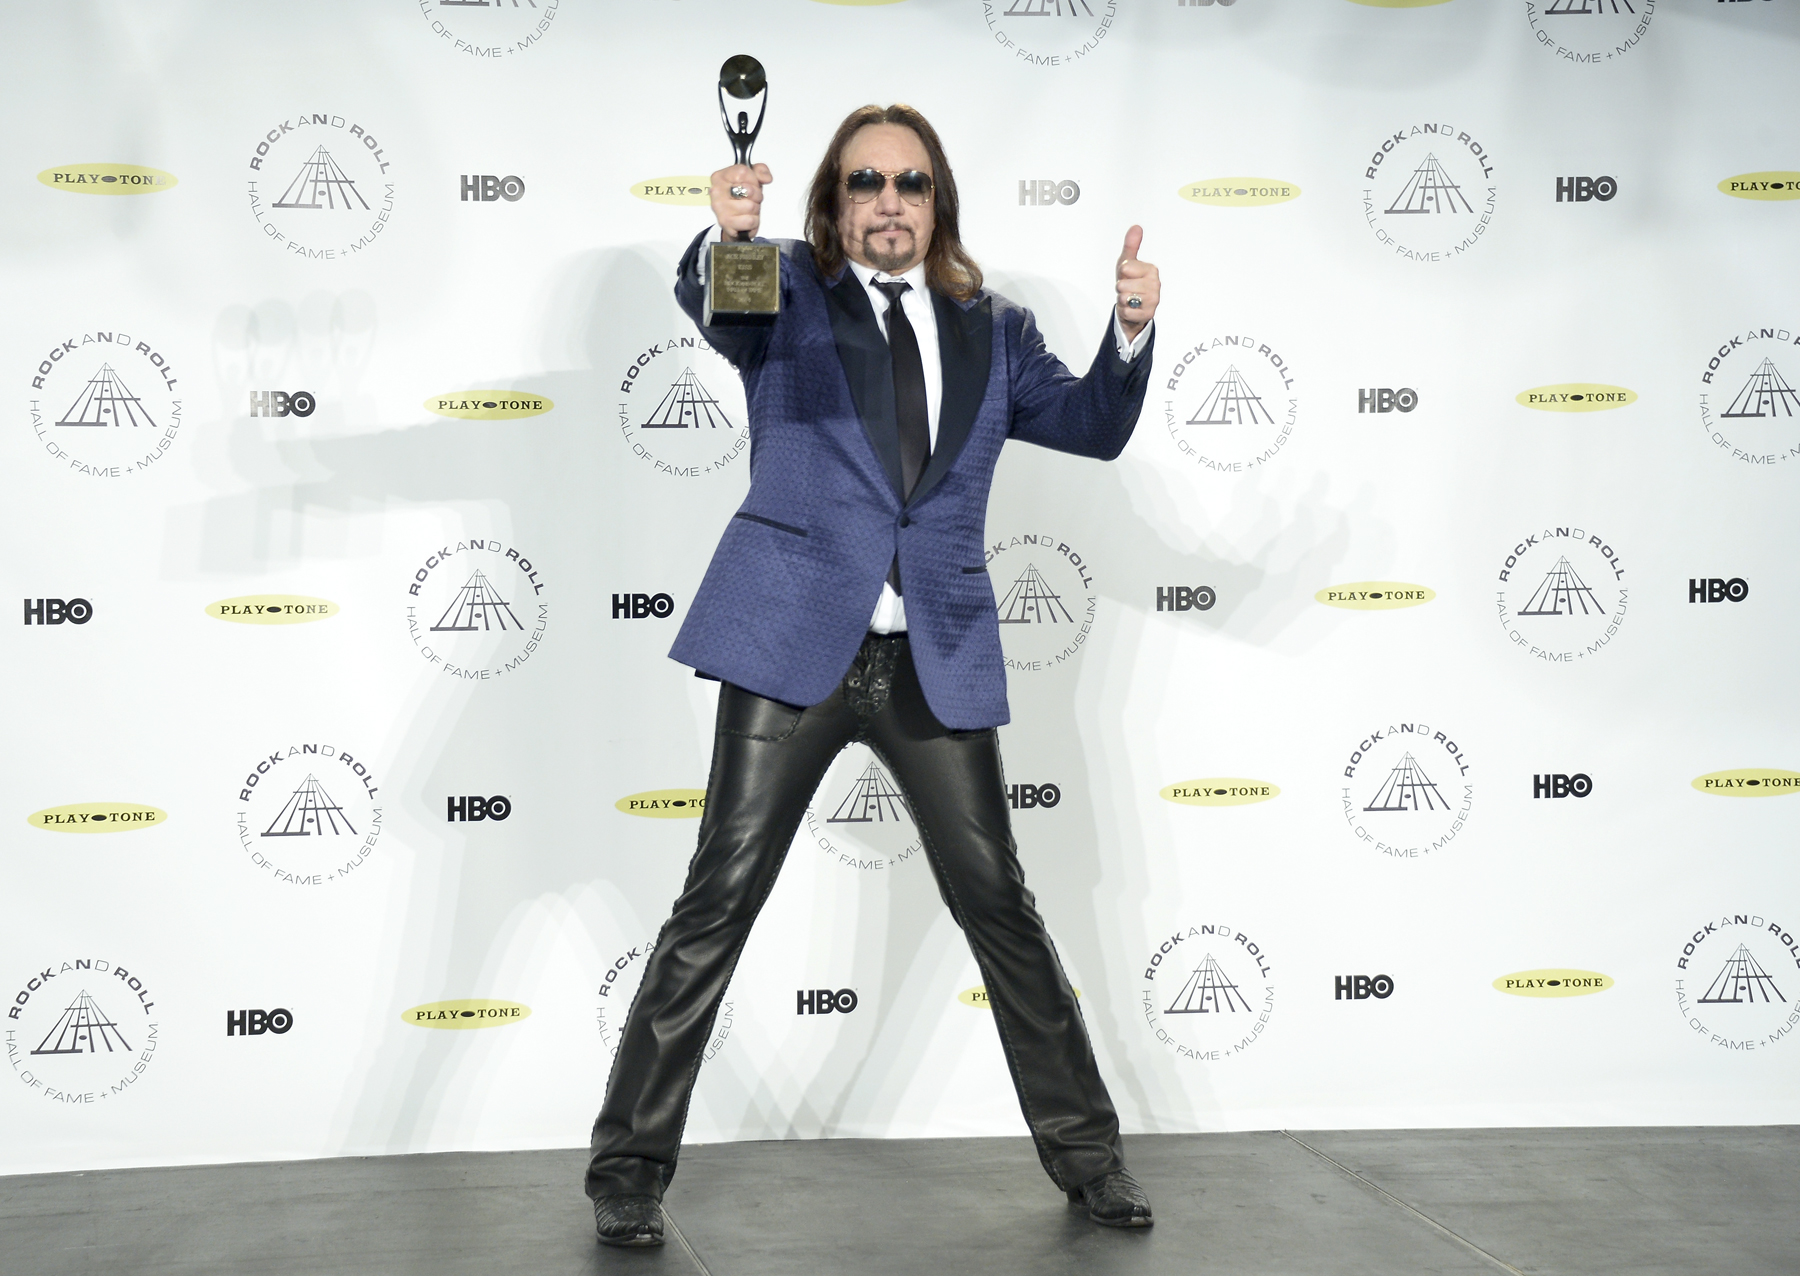 Ace Frehley on Kiss' Rock Hall Induction: 'We're Brothers in Rock'